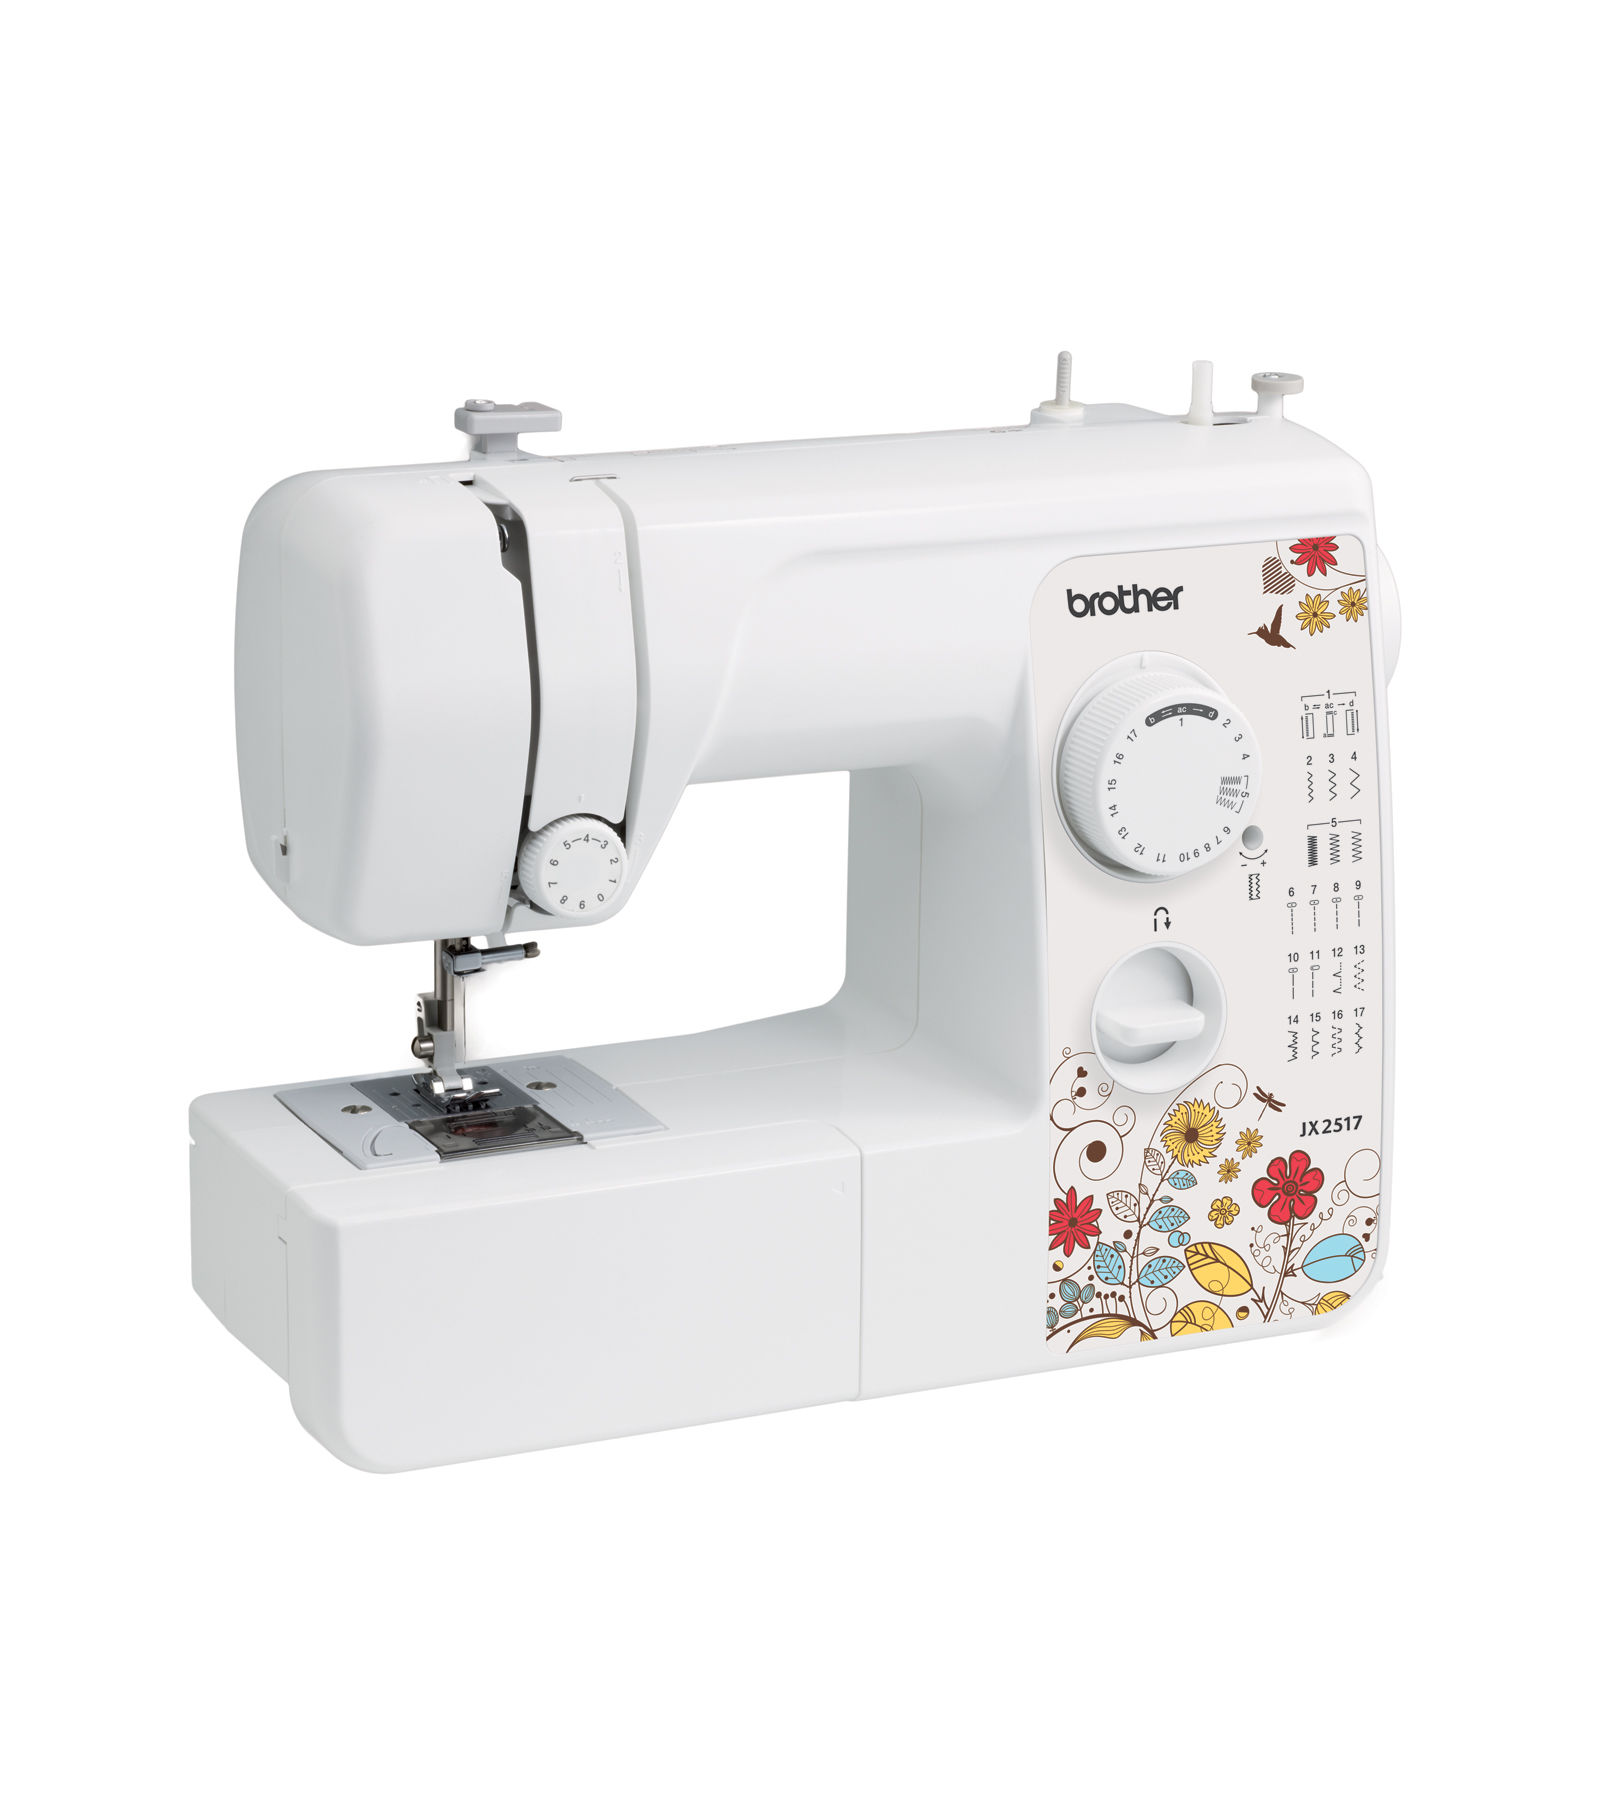 Brother RJX2517 Refurbished Sewing Machine